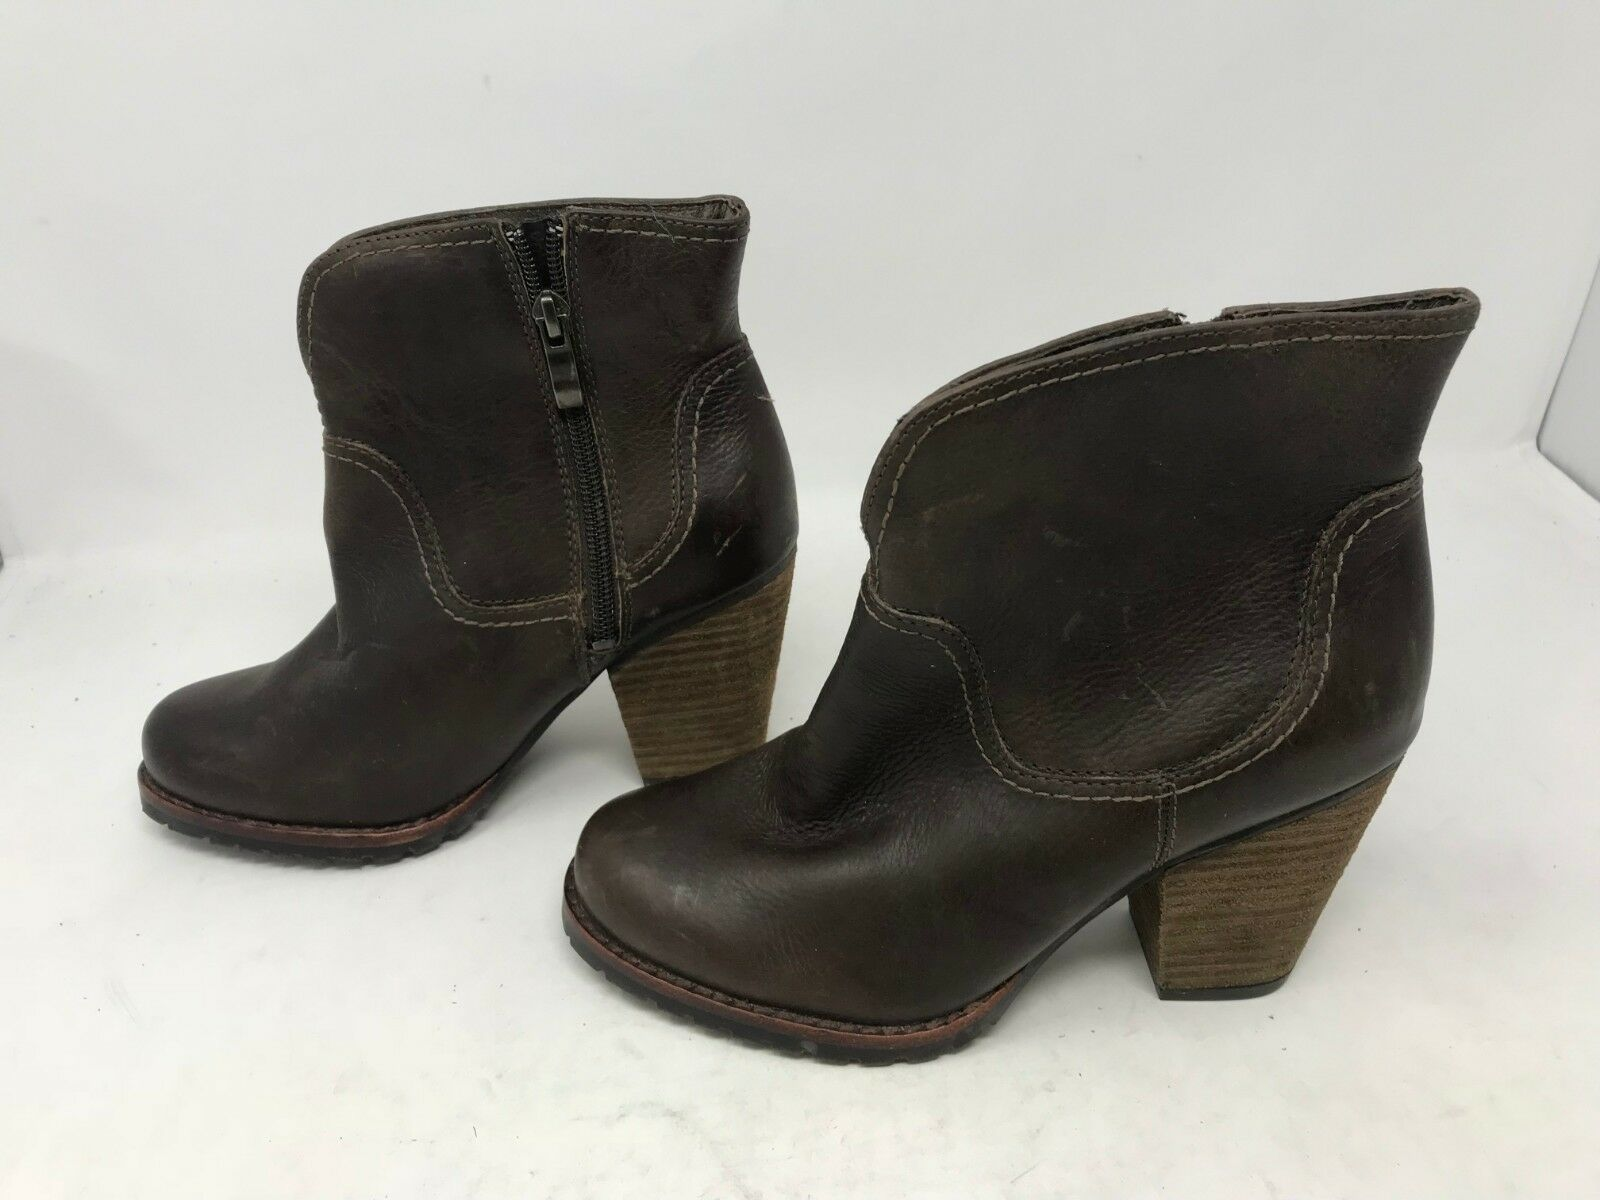 Donna Eastland (3942-18) Jezebel 1955 Brown Chukka Stivali Size 6   (19L)